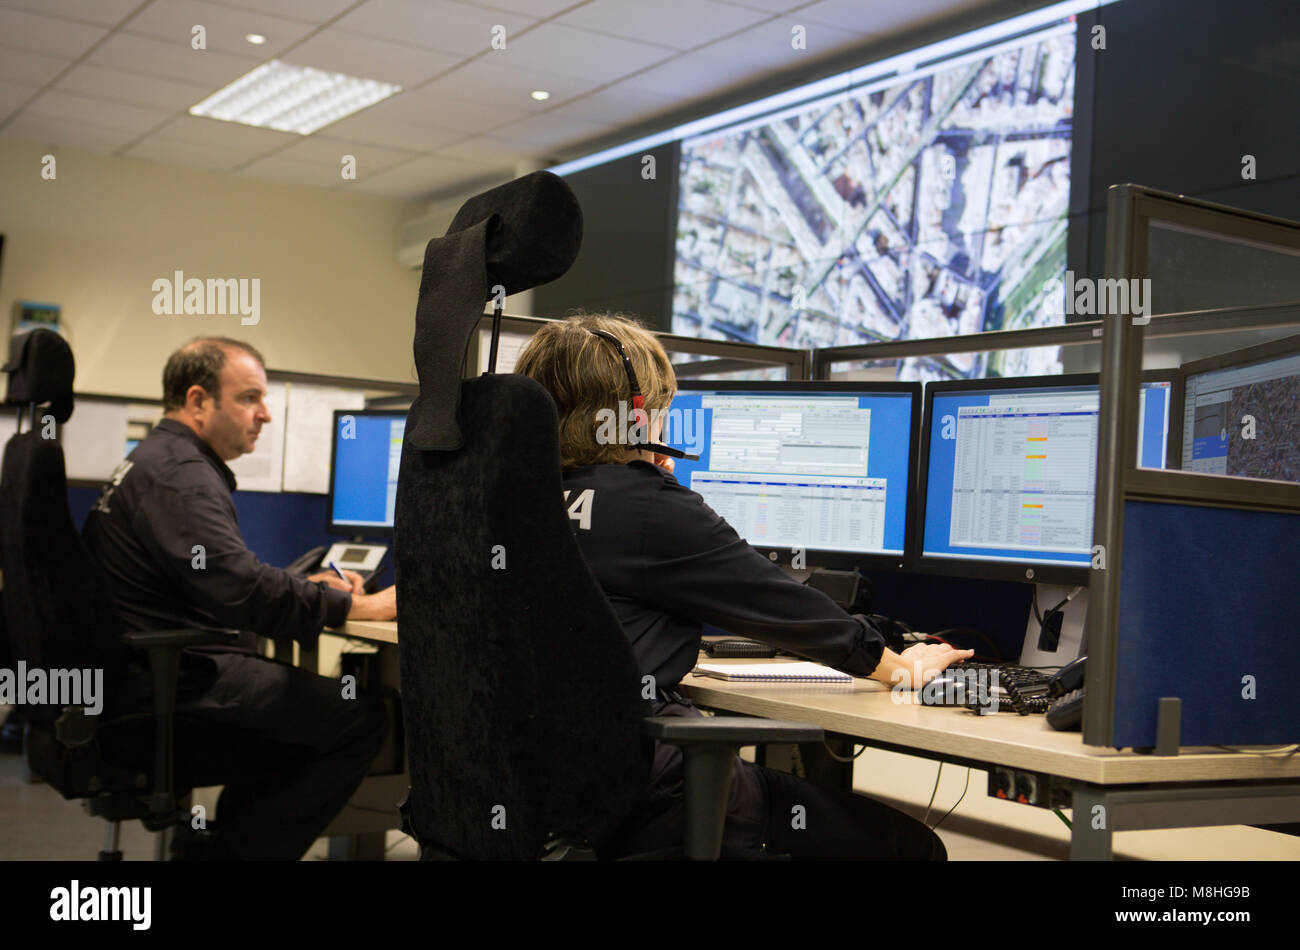 Police officers control the emergency calls from their control area inside main local police headquarter in palma - Stock Image